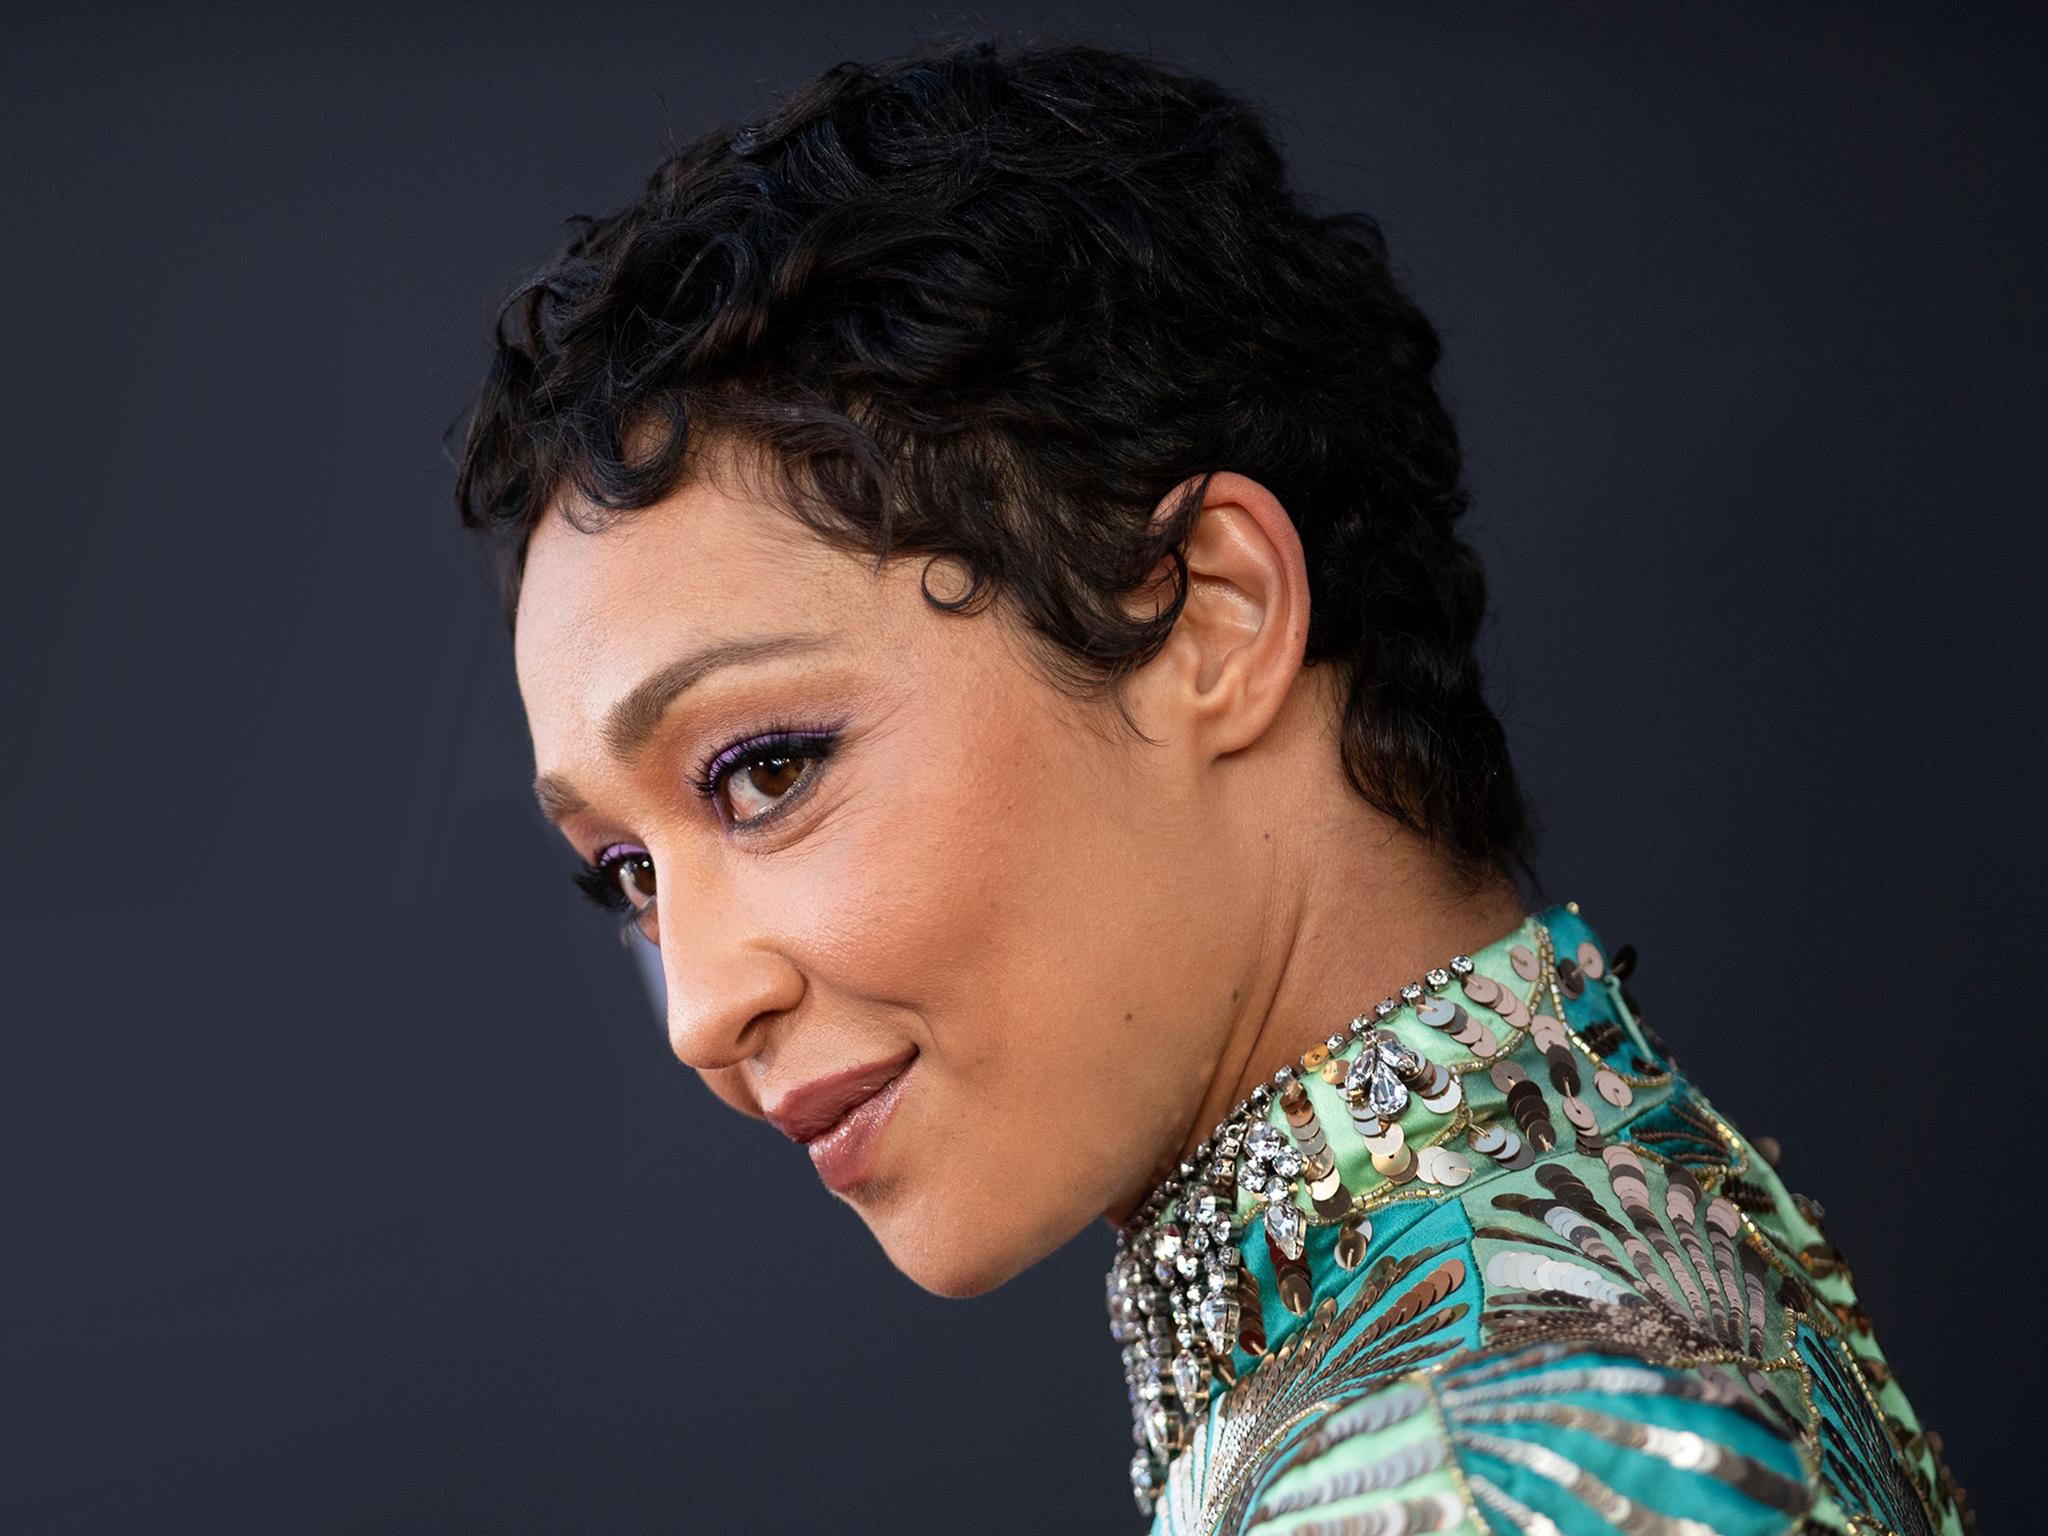 Ruth Negga interview: 'I remember thinking, I'm going to embrace my difference, and I think maybe that fuelled my acting'